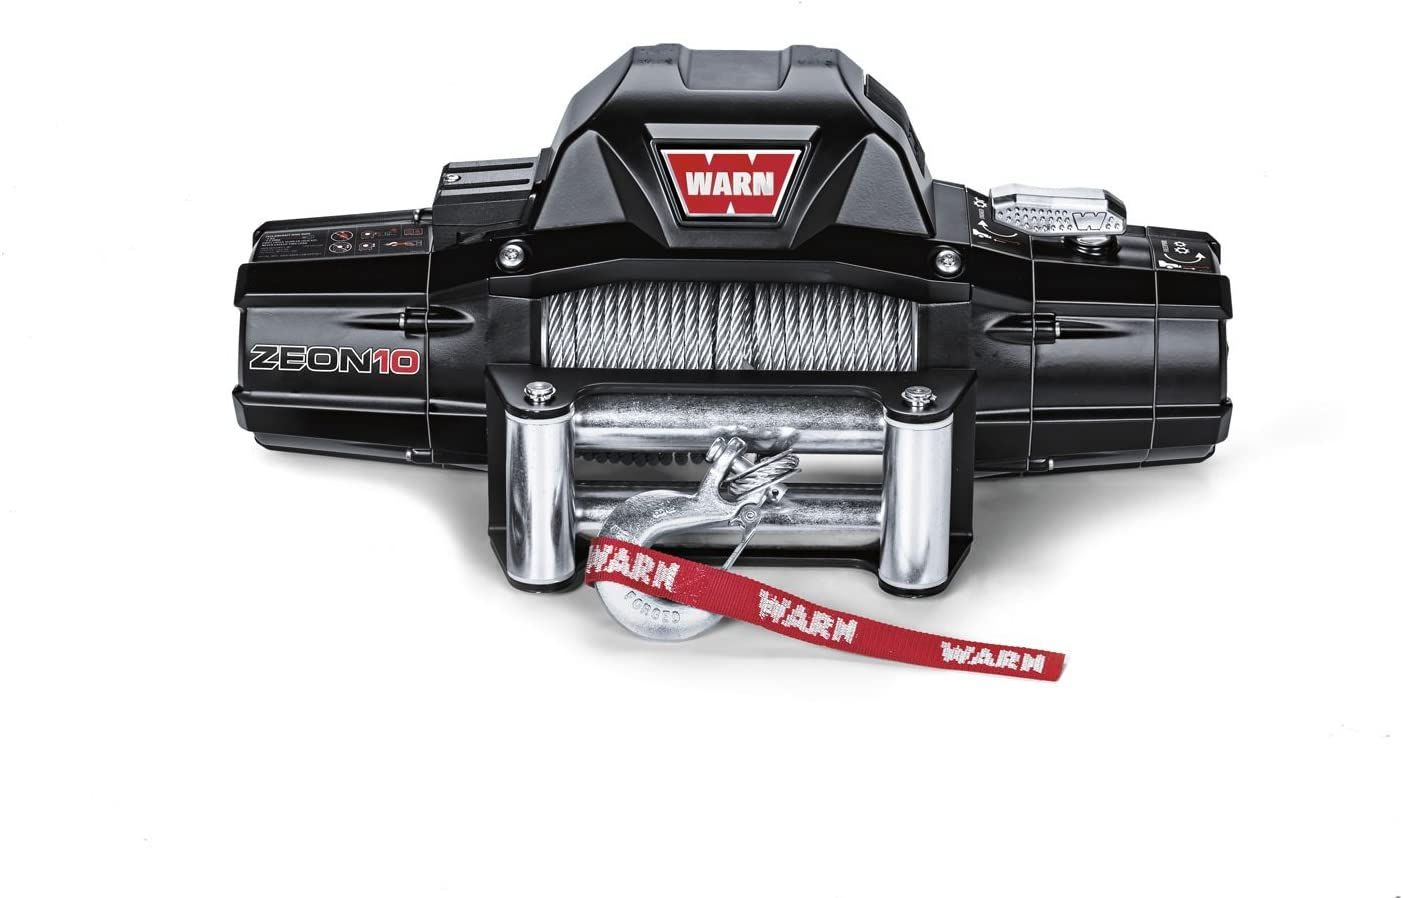 Warn 88990 Zeon 10 Electric 12v Winch With Steel Cable